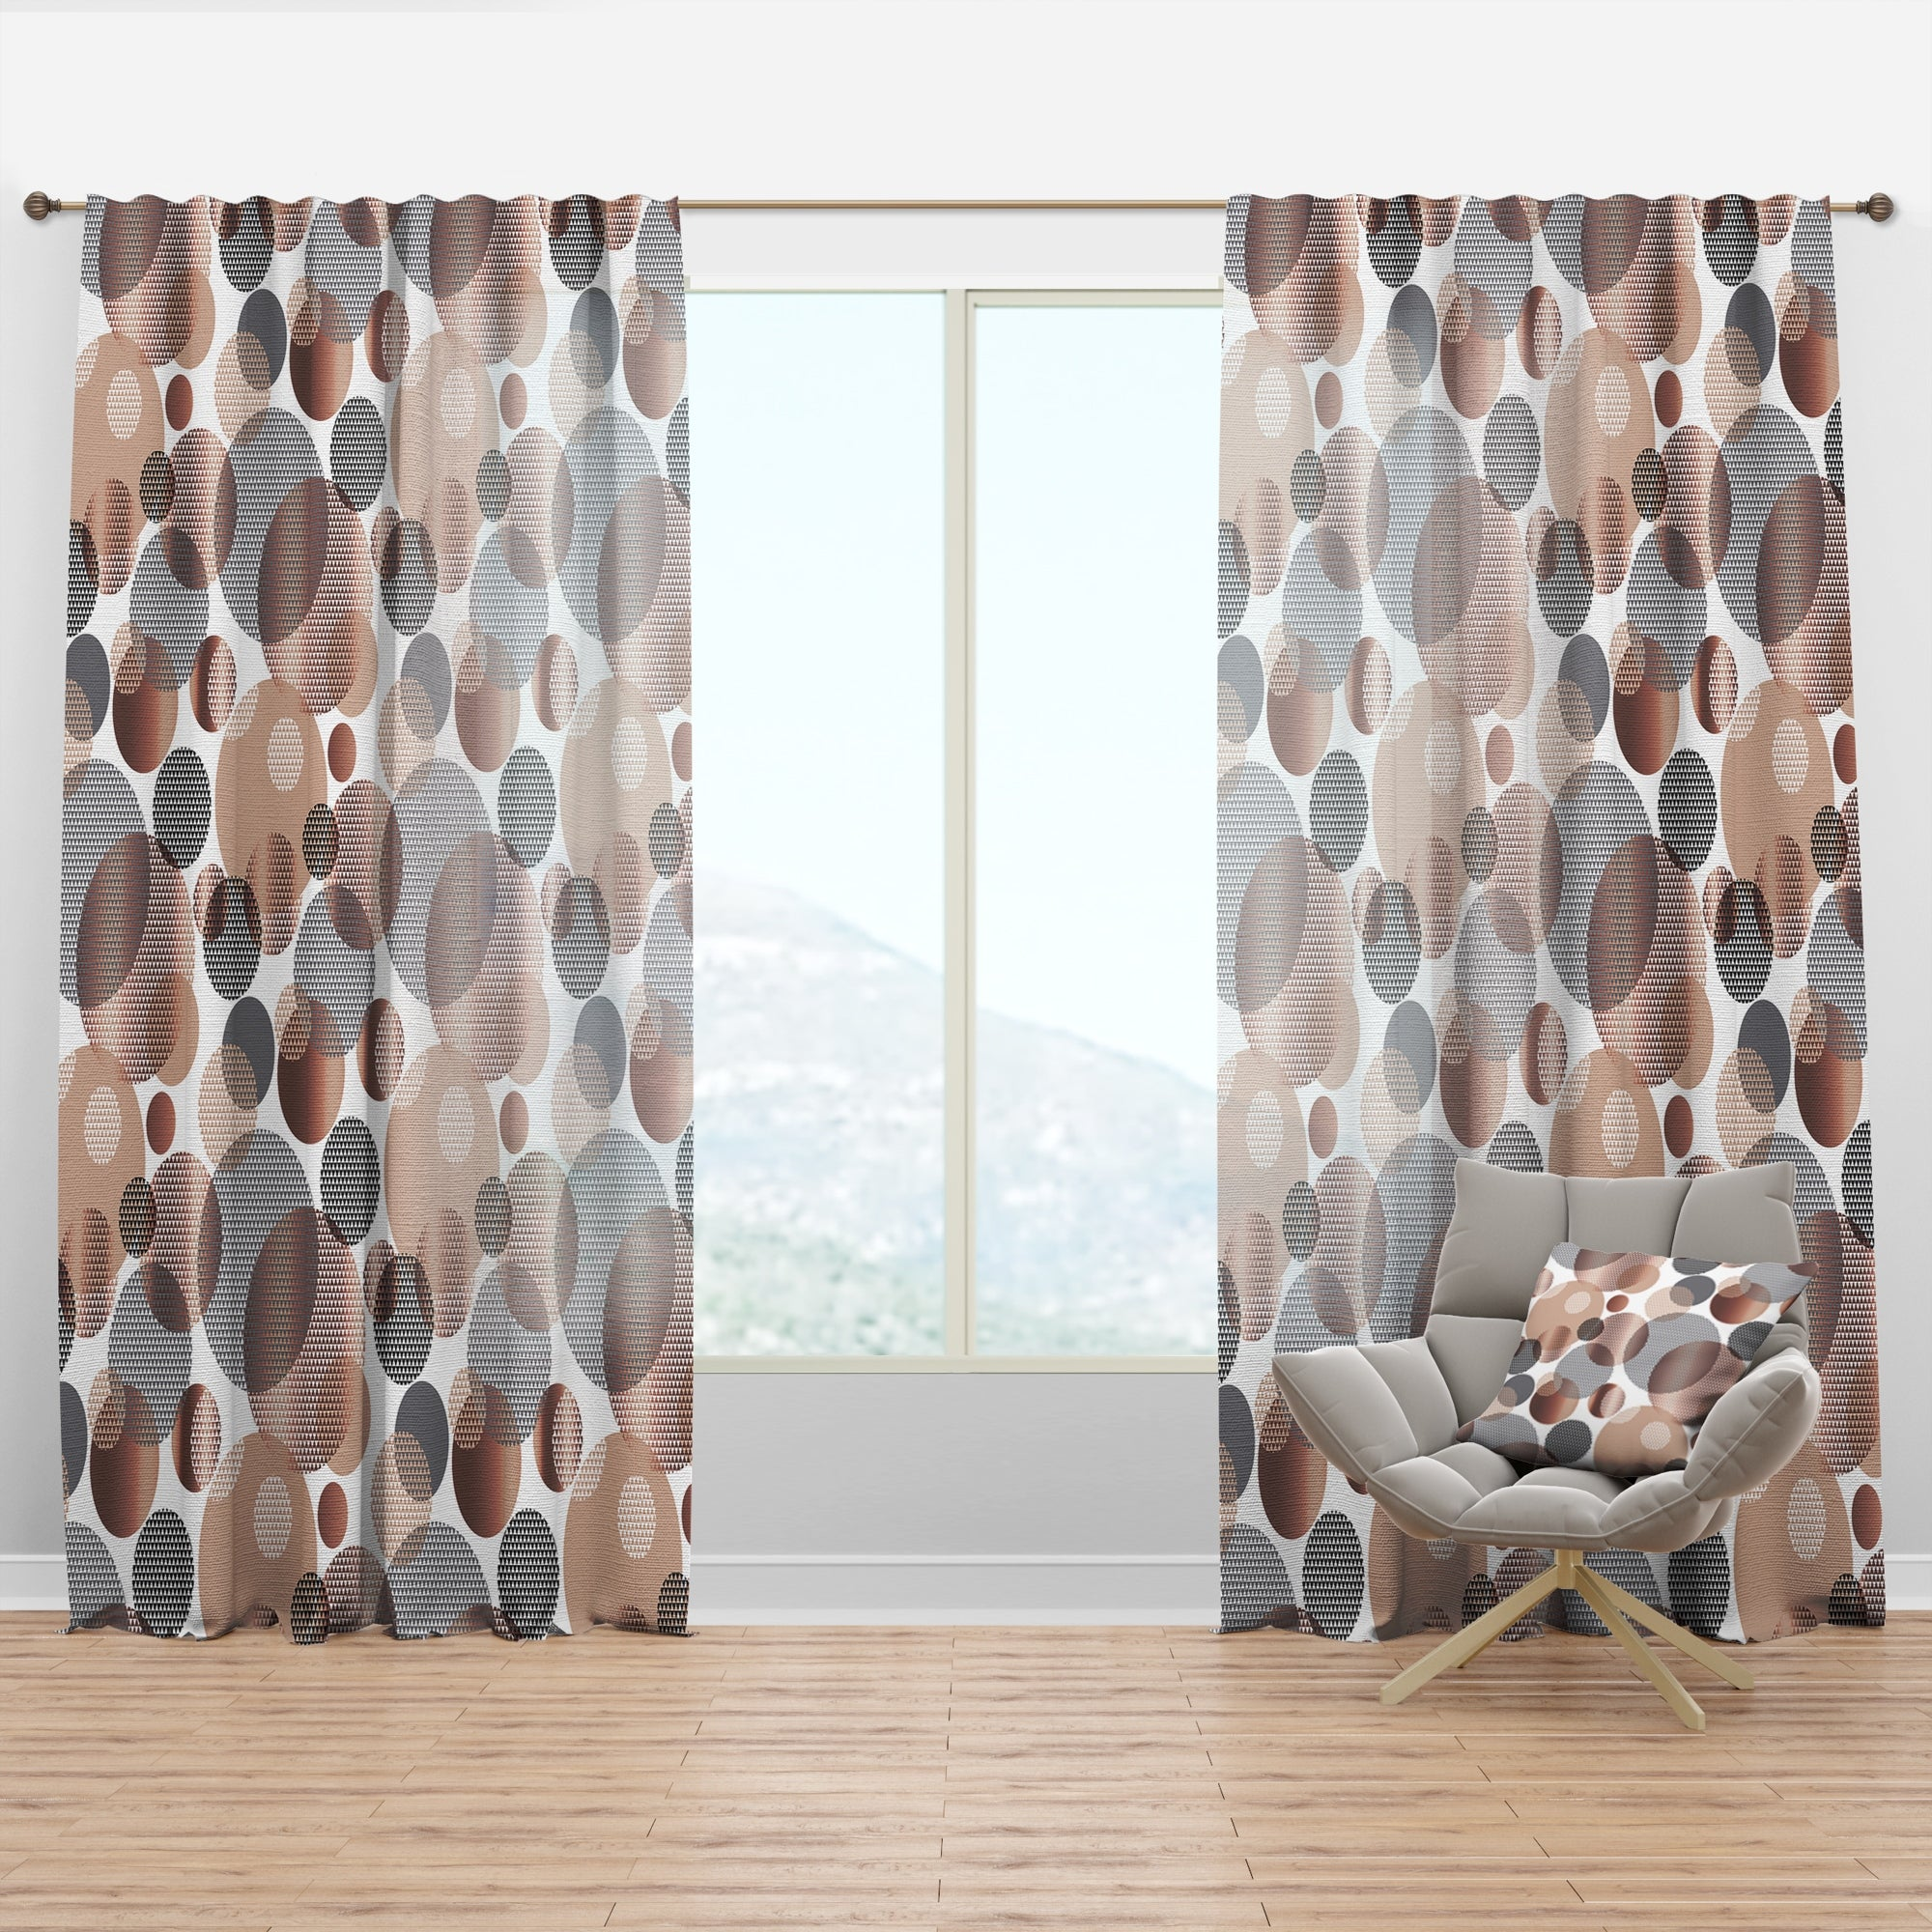 Shop For Designart Circular Abstract Retro Geometric Xiii Mid Century Modern Curtain Panel Get Free Delivery On Everything At Overstock Your Online Home Decor Outlet Store Get 5 In Rewards With Club O 29626187